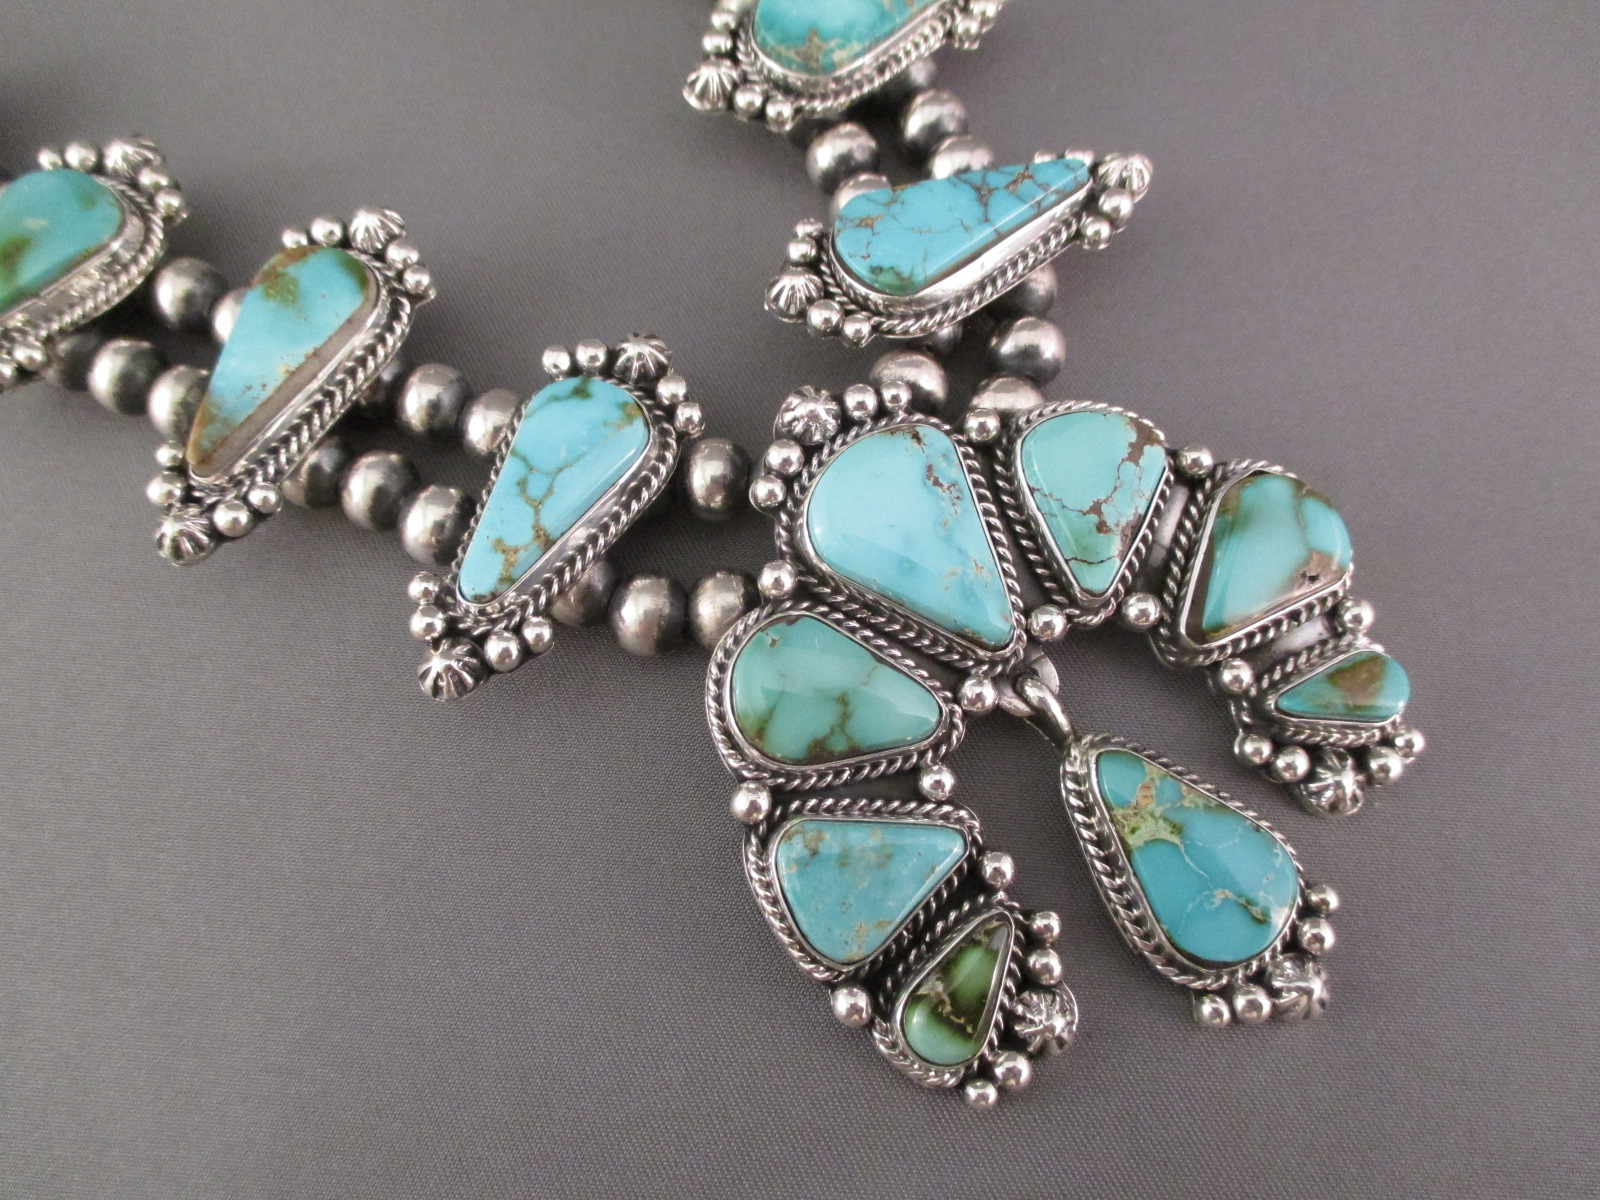 Turquoise Squash Blossom Necklace & Earring Set